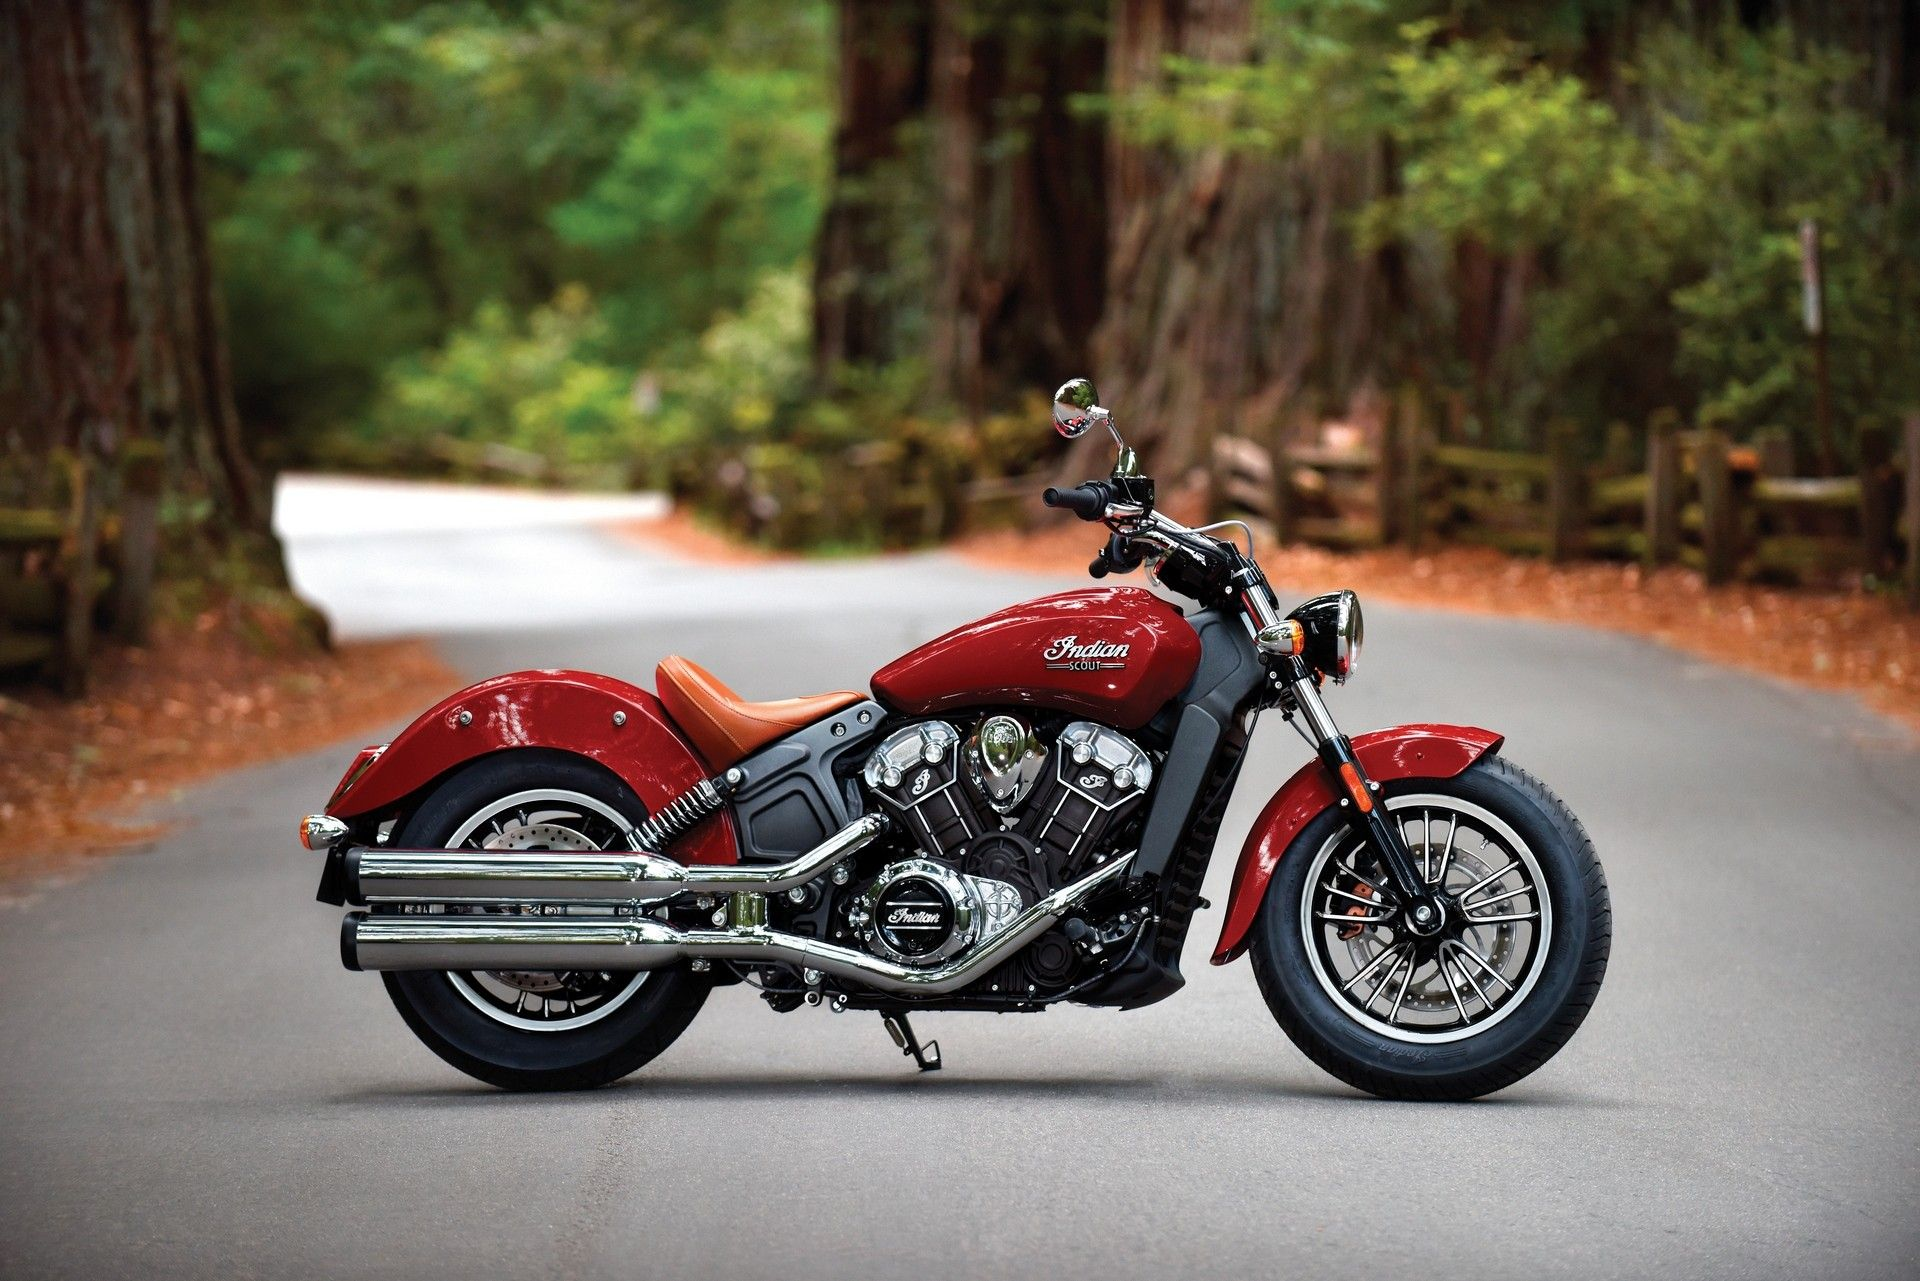 Indian Motorcycle Wallpapers Top Free Indian Motorcycle